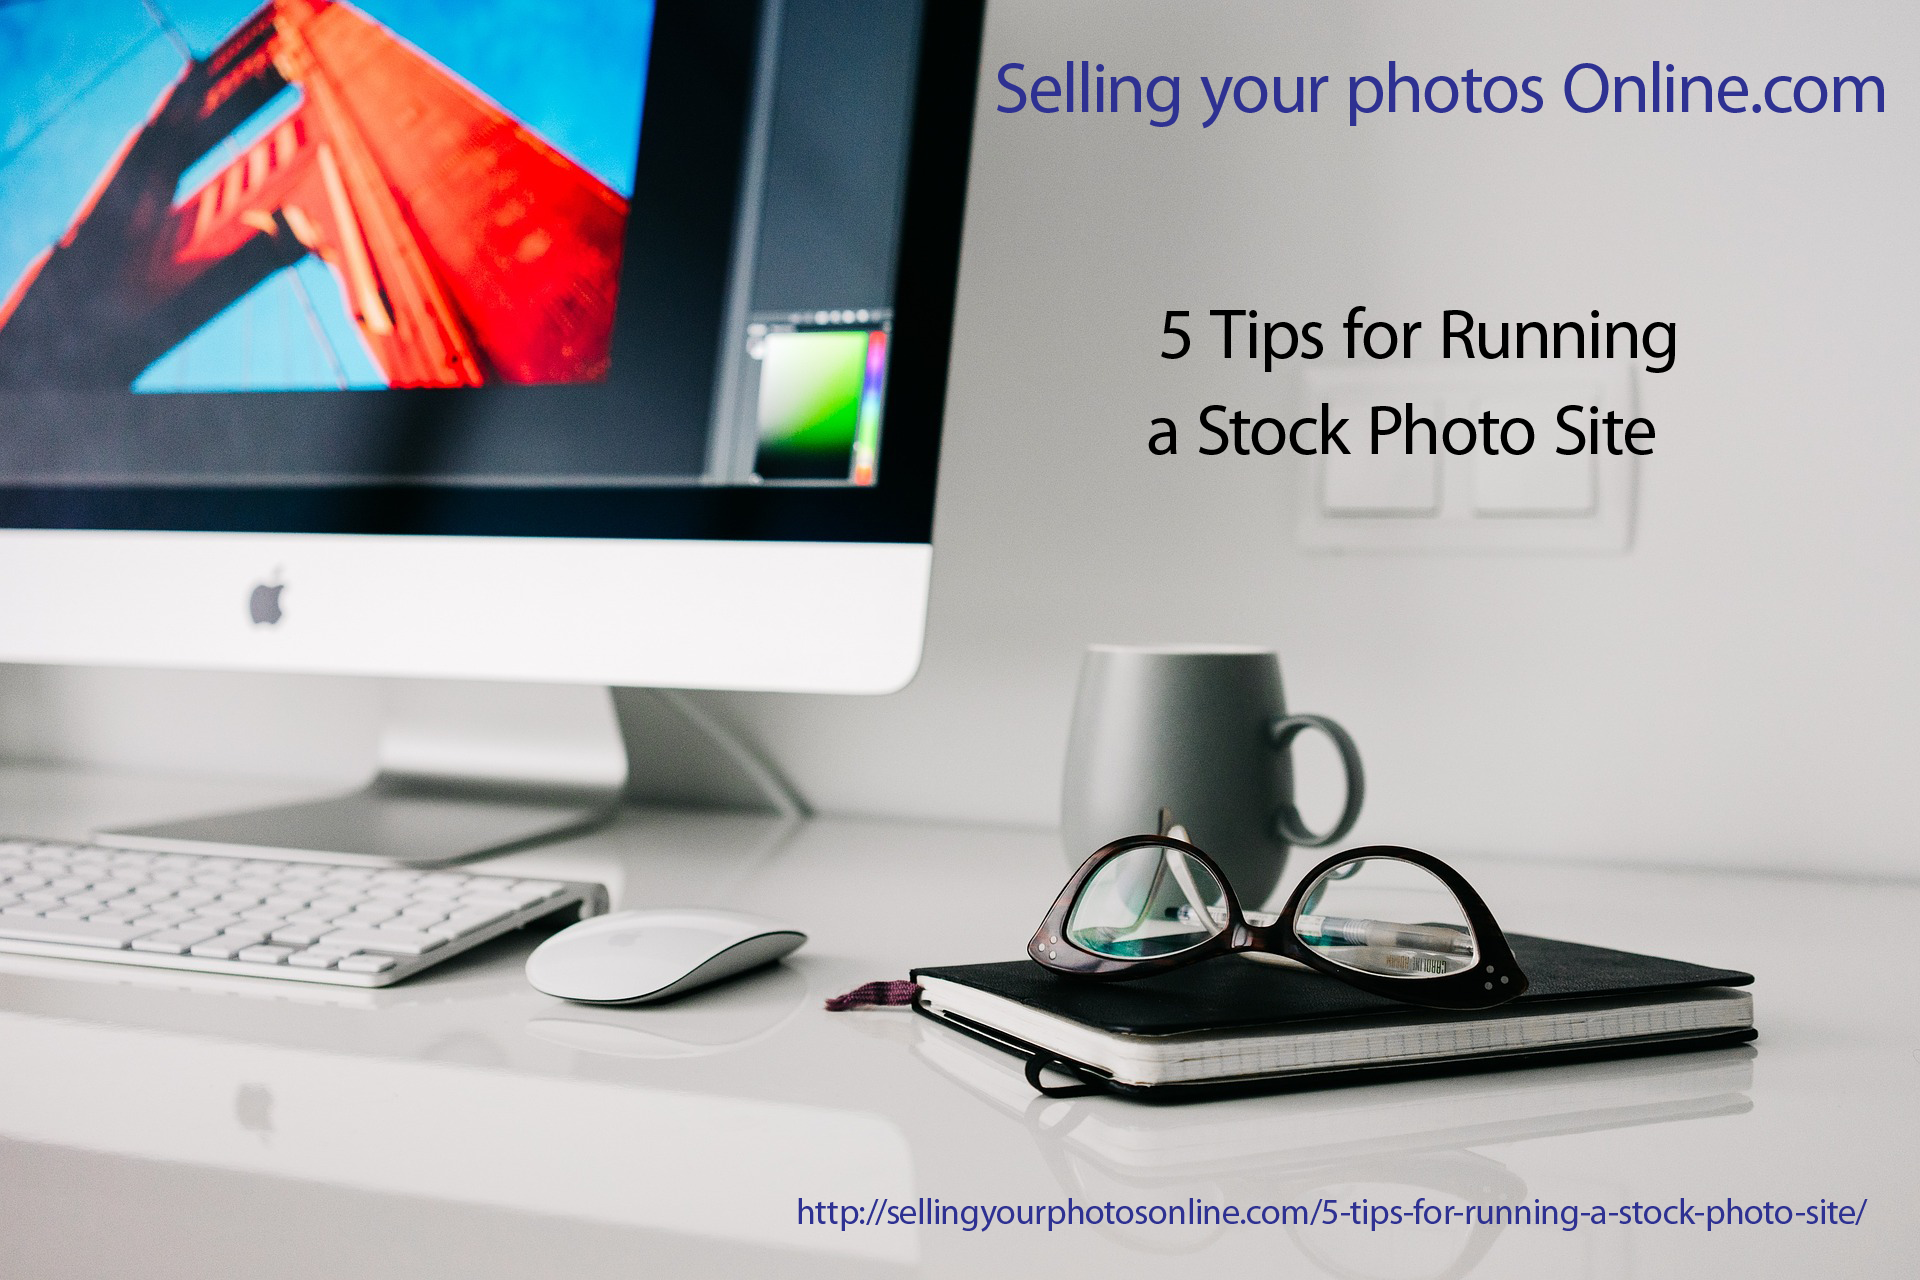 Selling your Photos Online